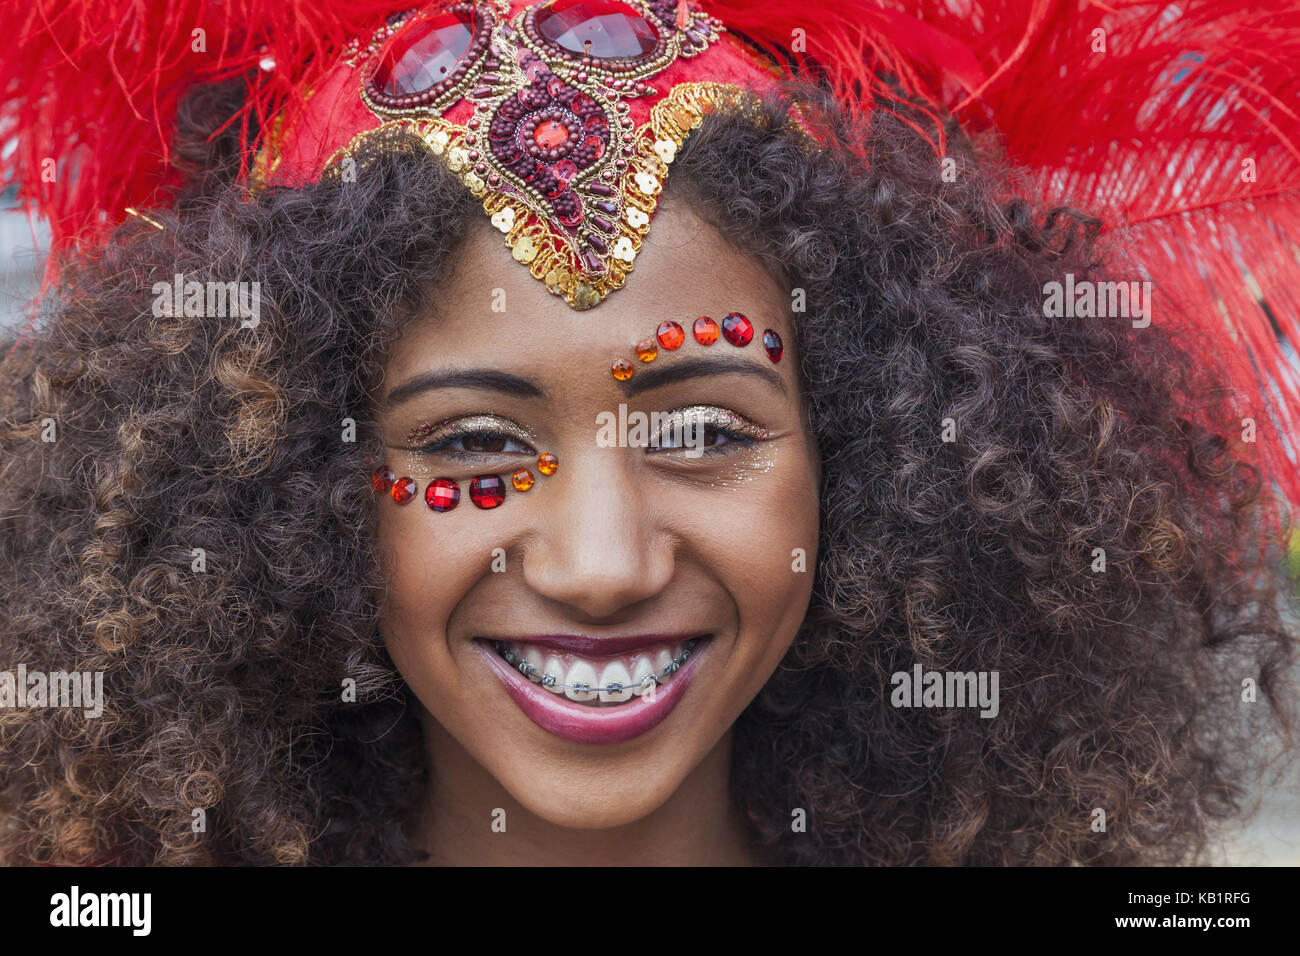 England, London, Notting Hill Carnival, woman, disguise, smile, portrait, - Stock Image